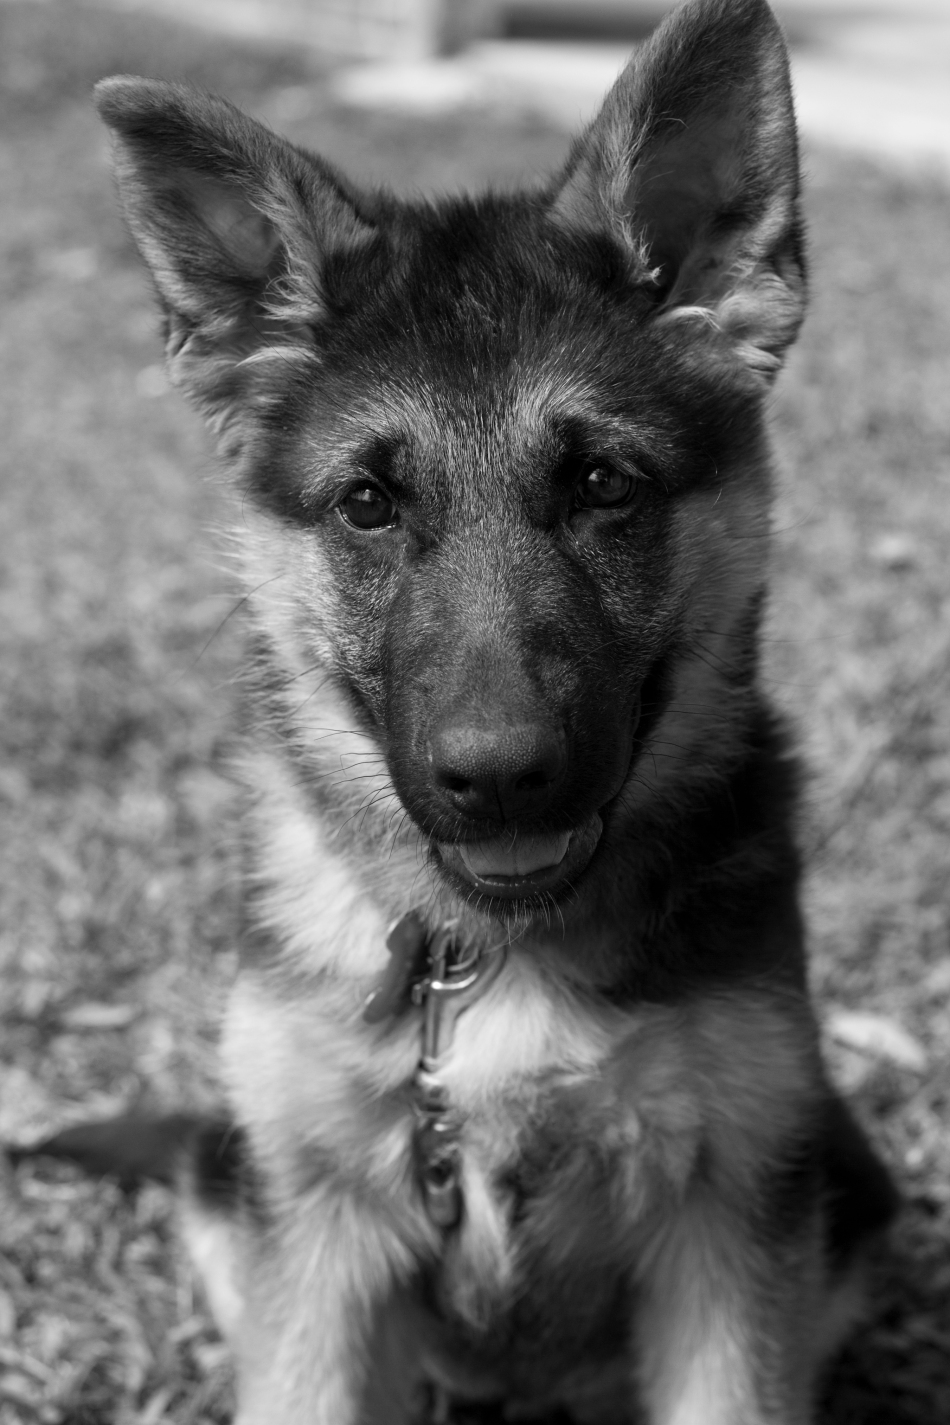 A Female German Shepherd Puppy in black & white